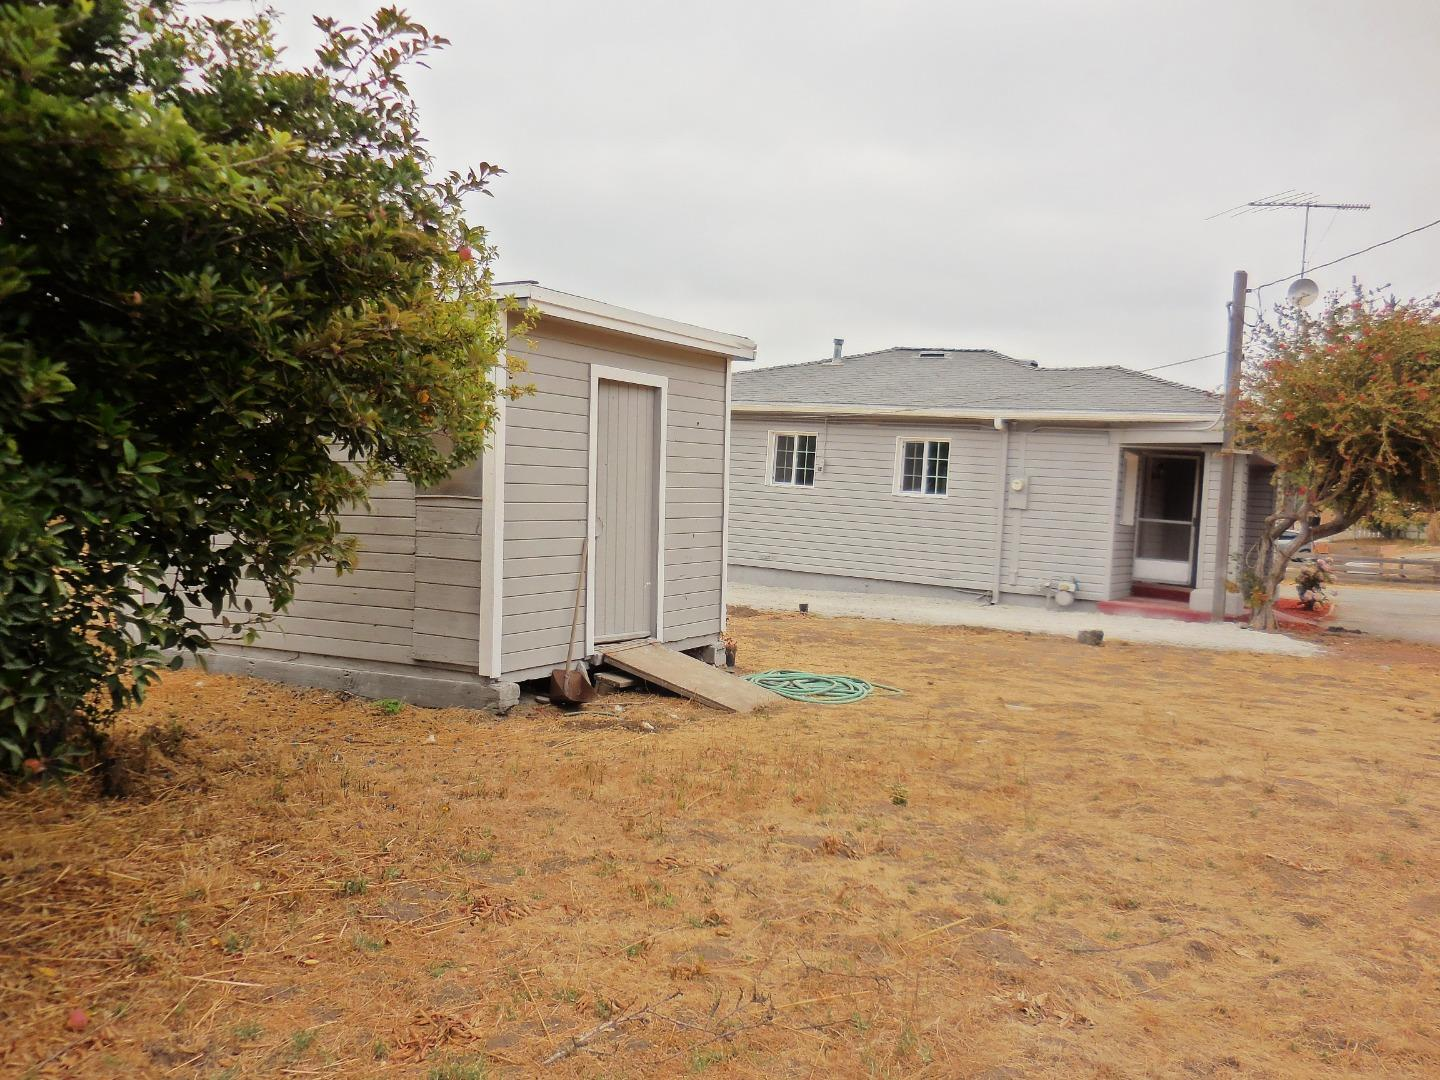 10770 Ralph Lane Salinas, CA 93907 - MLS #: ML81718671